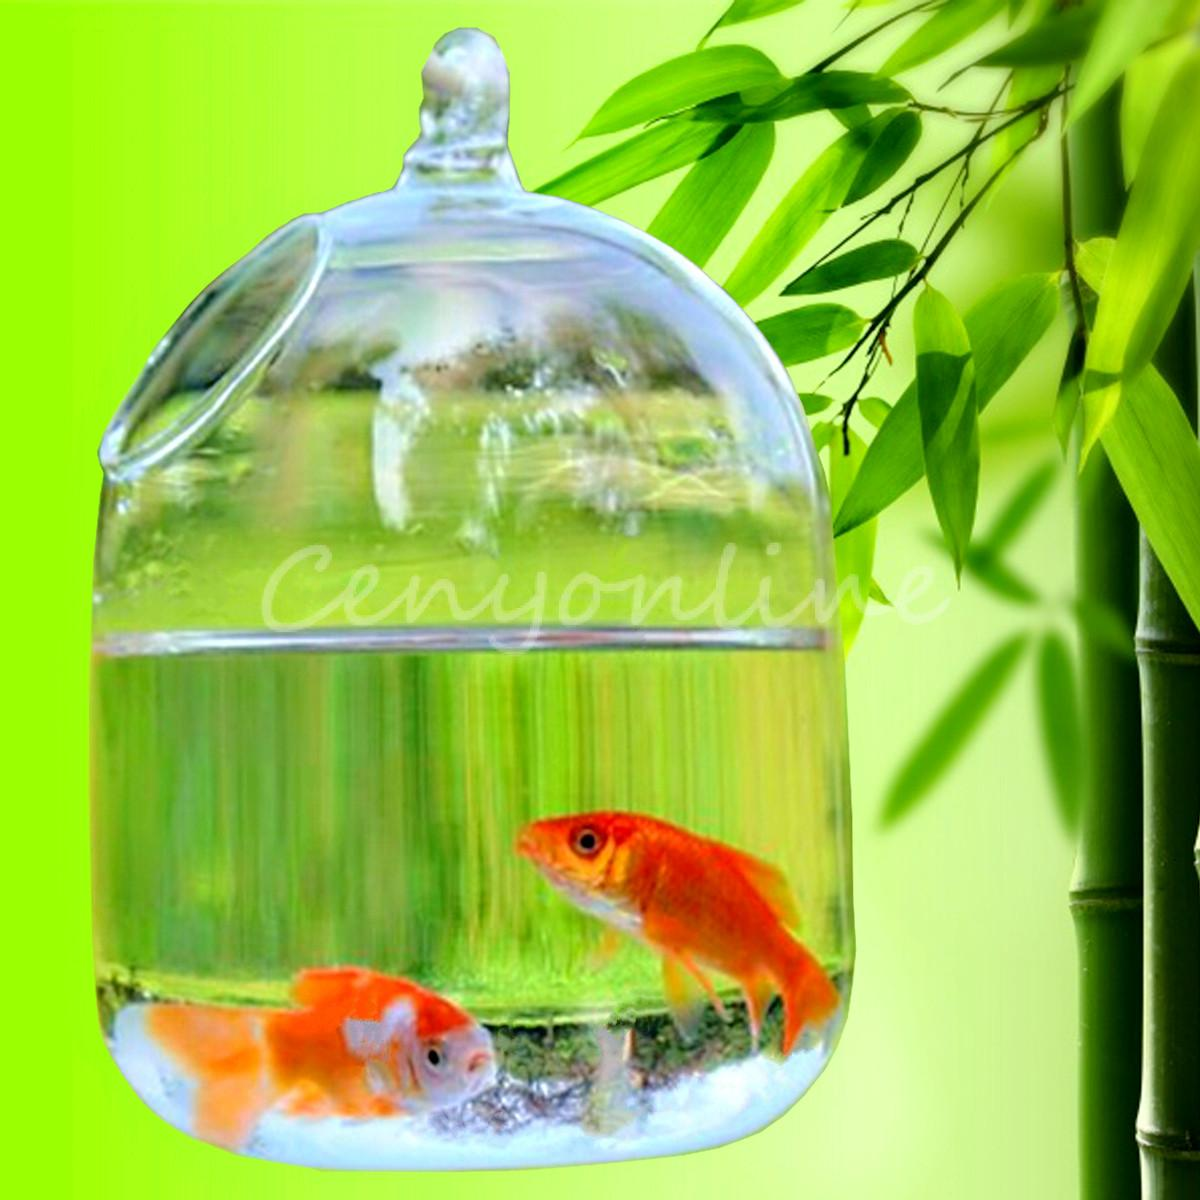 Fish Tank Glass Vase Glass Flower Hydroponic Container Pot L 16cm W